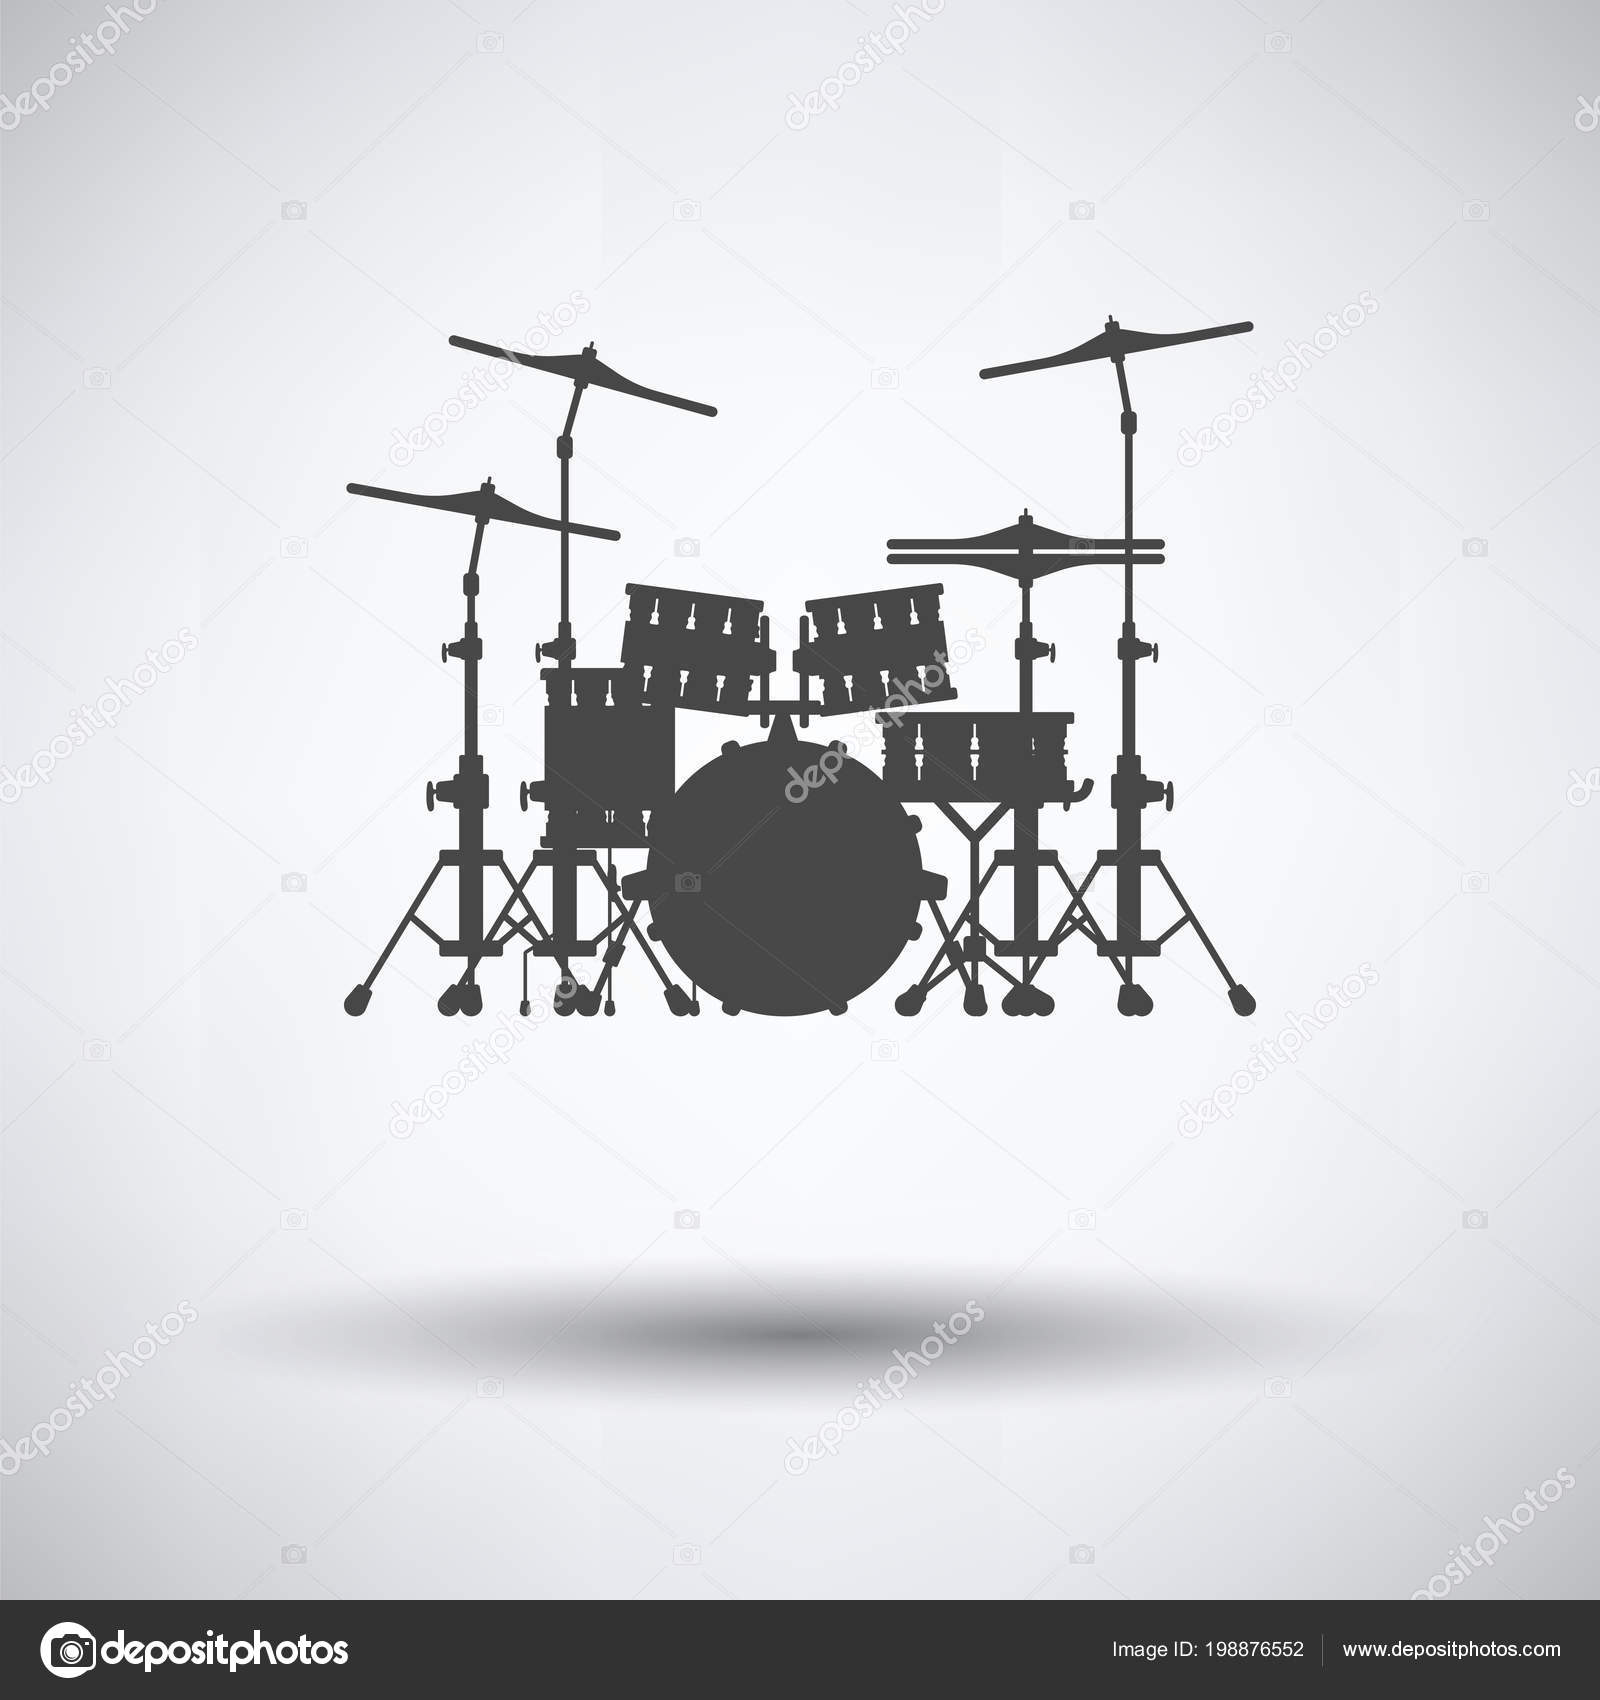 hight resolution of drum set icon gray background shadow vector illustration stock vector